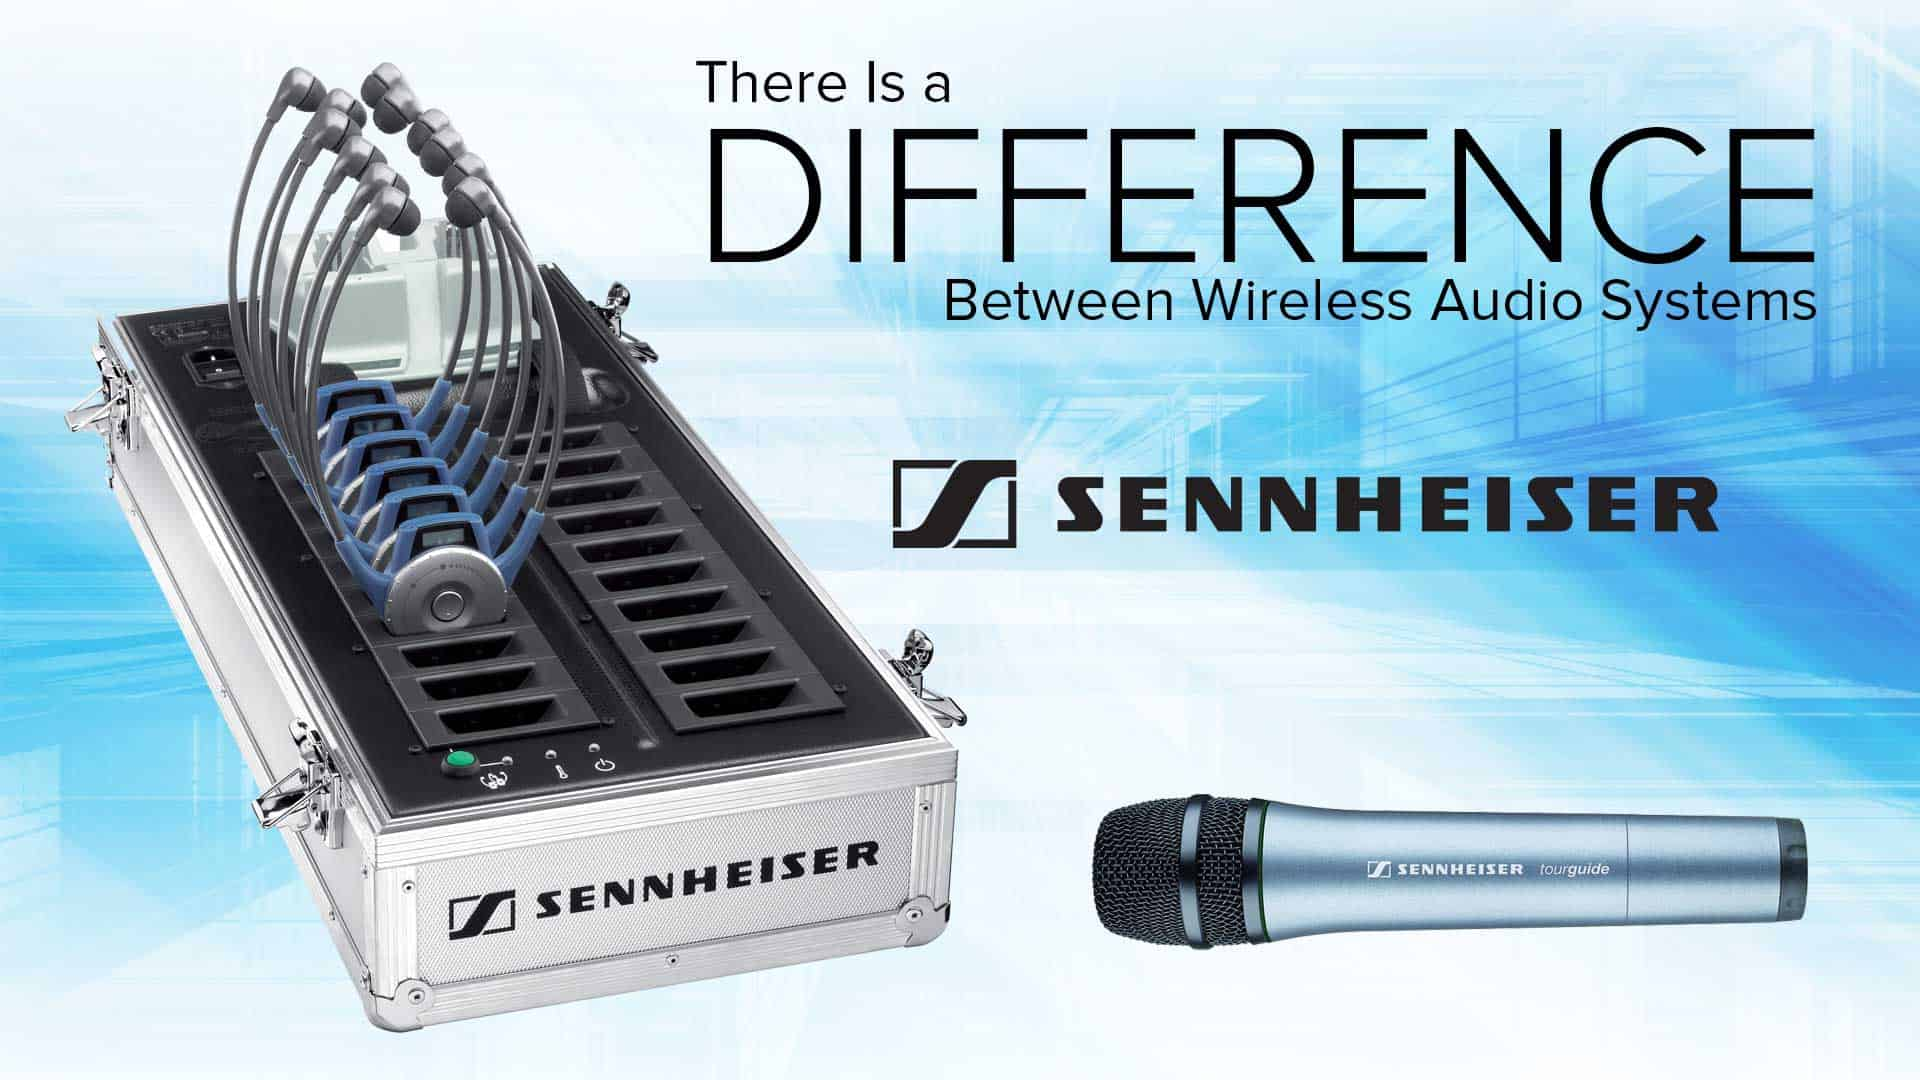 TourGuide Solutions Offers the High-Quality Sennheiser Tour Guide System